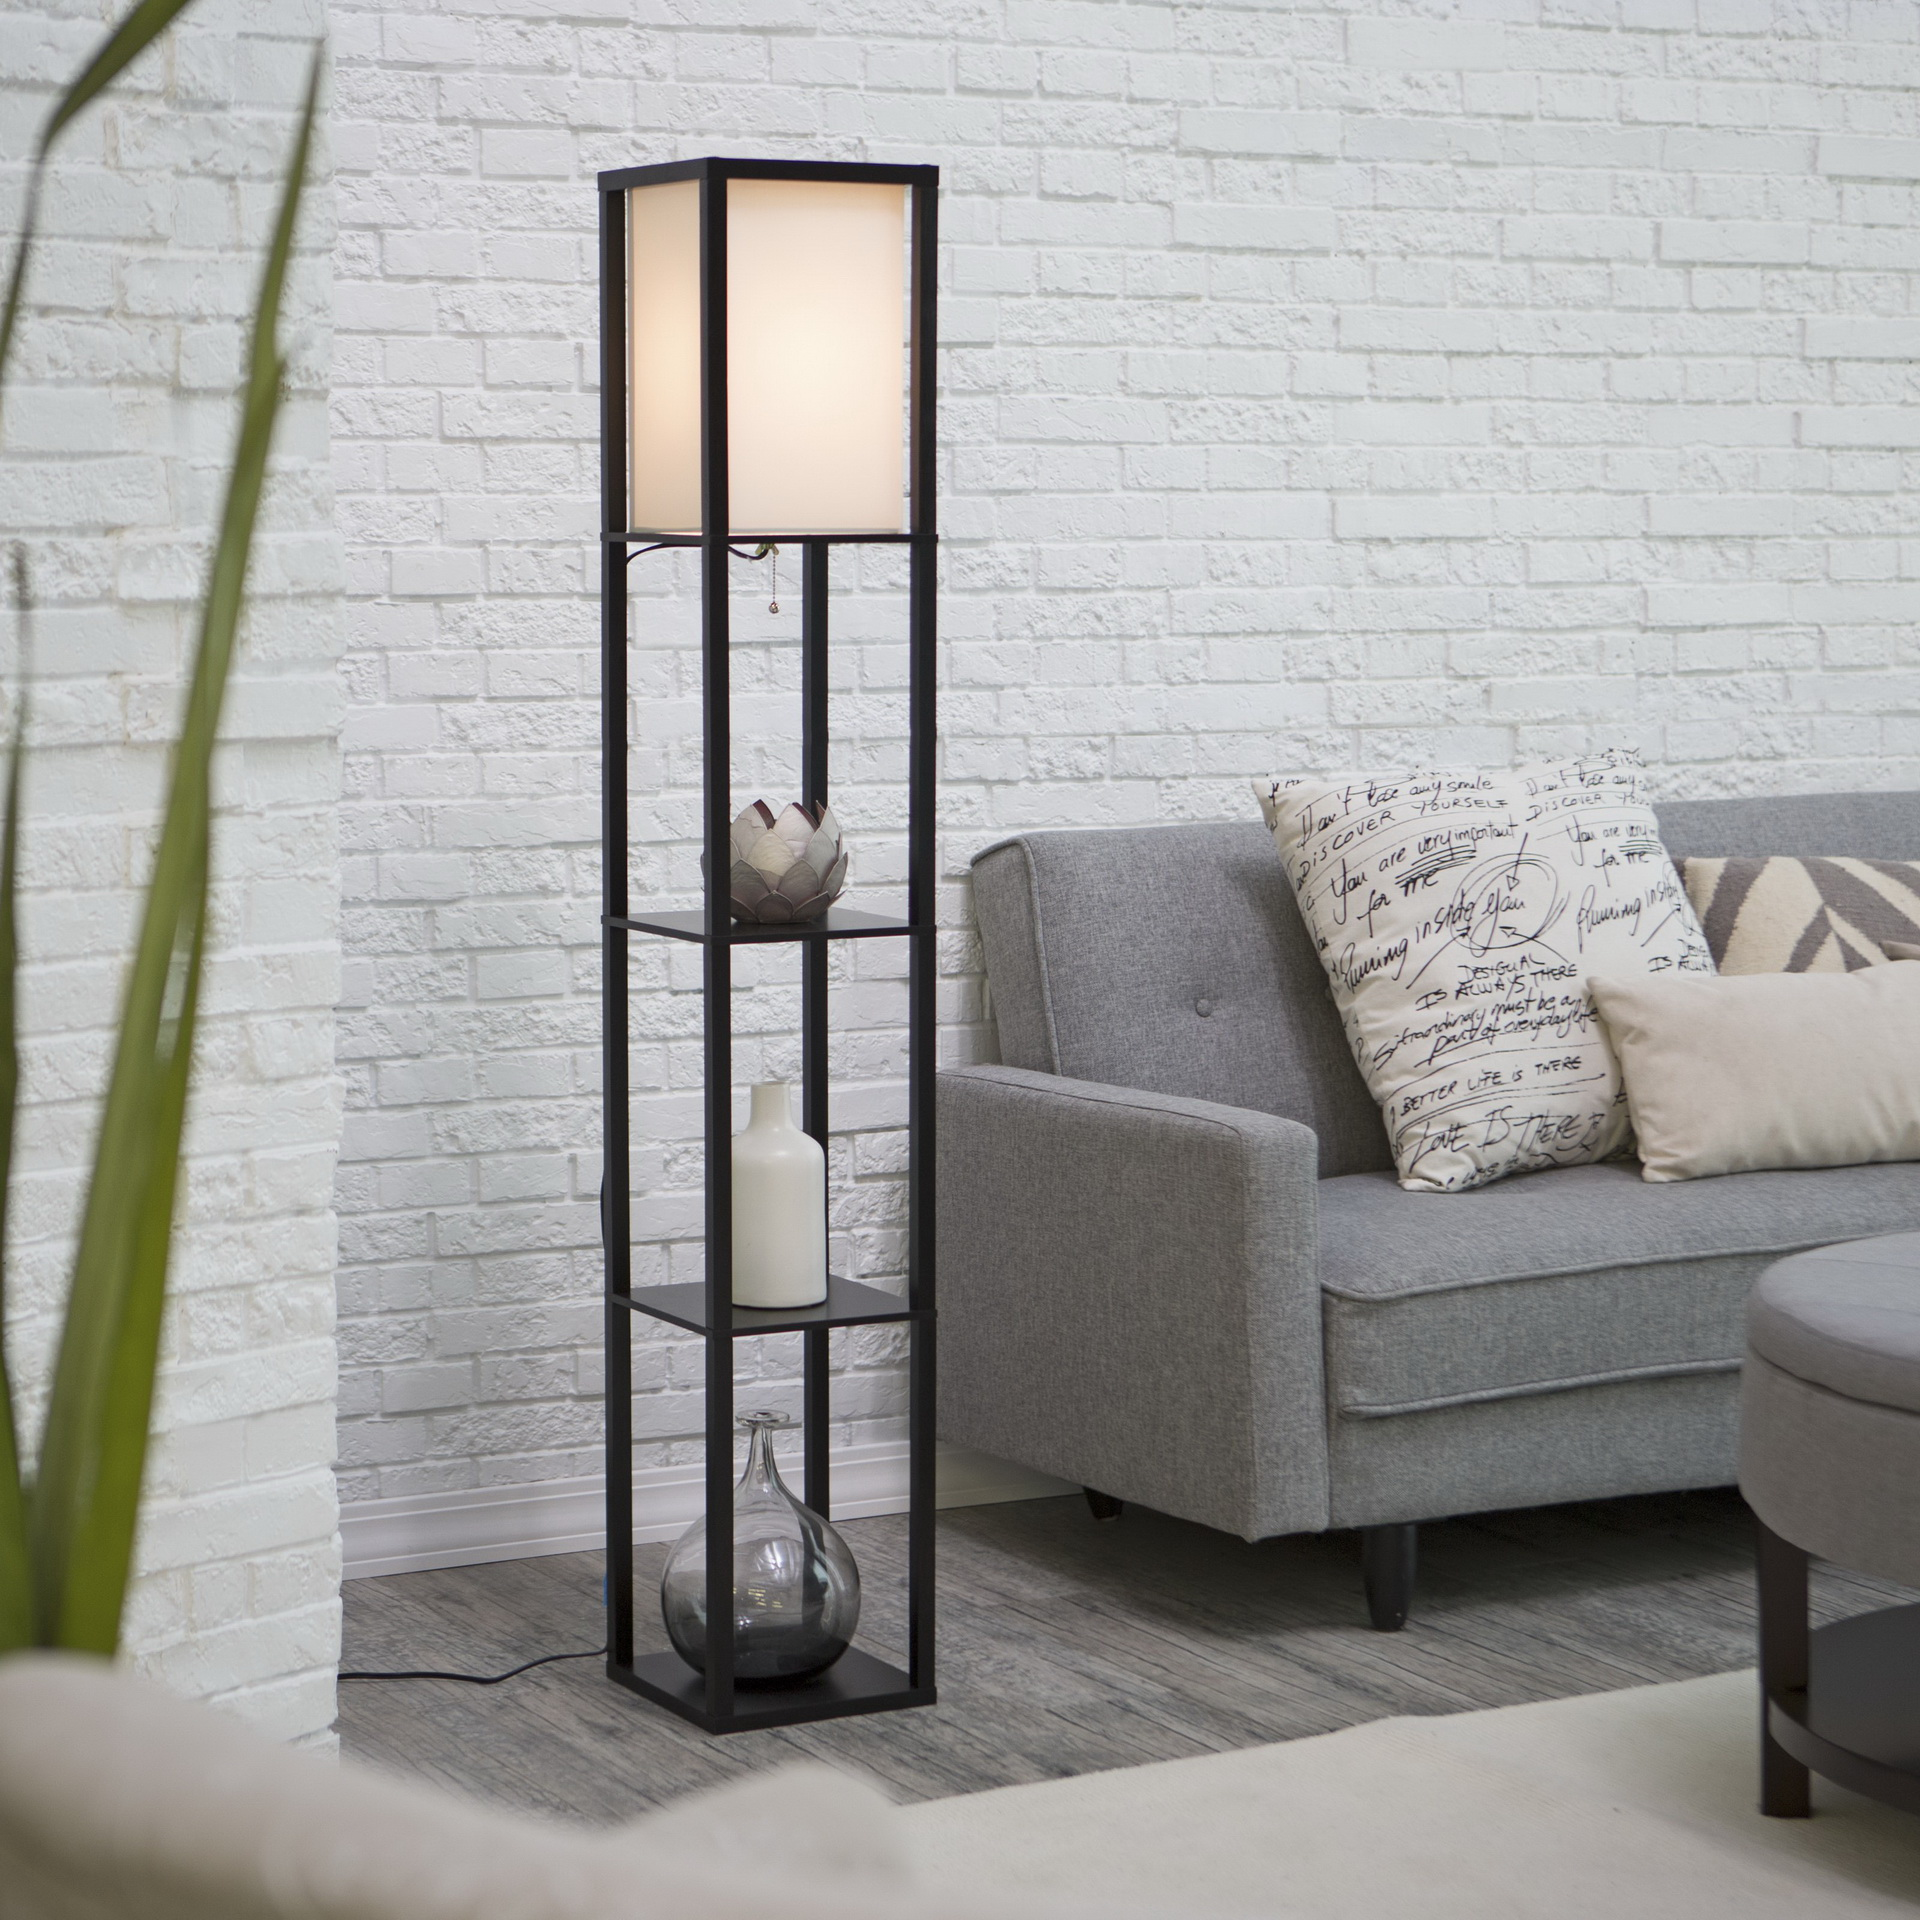 adesso-floor-lamp-photo-9